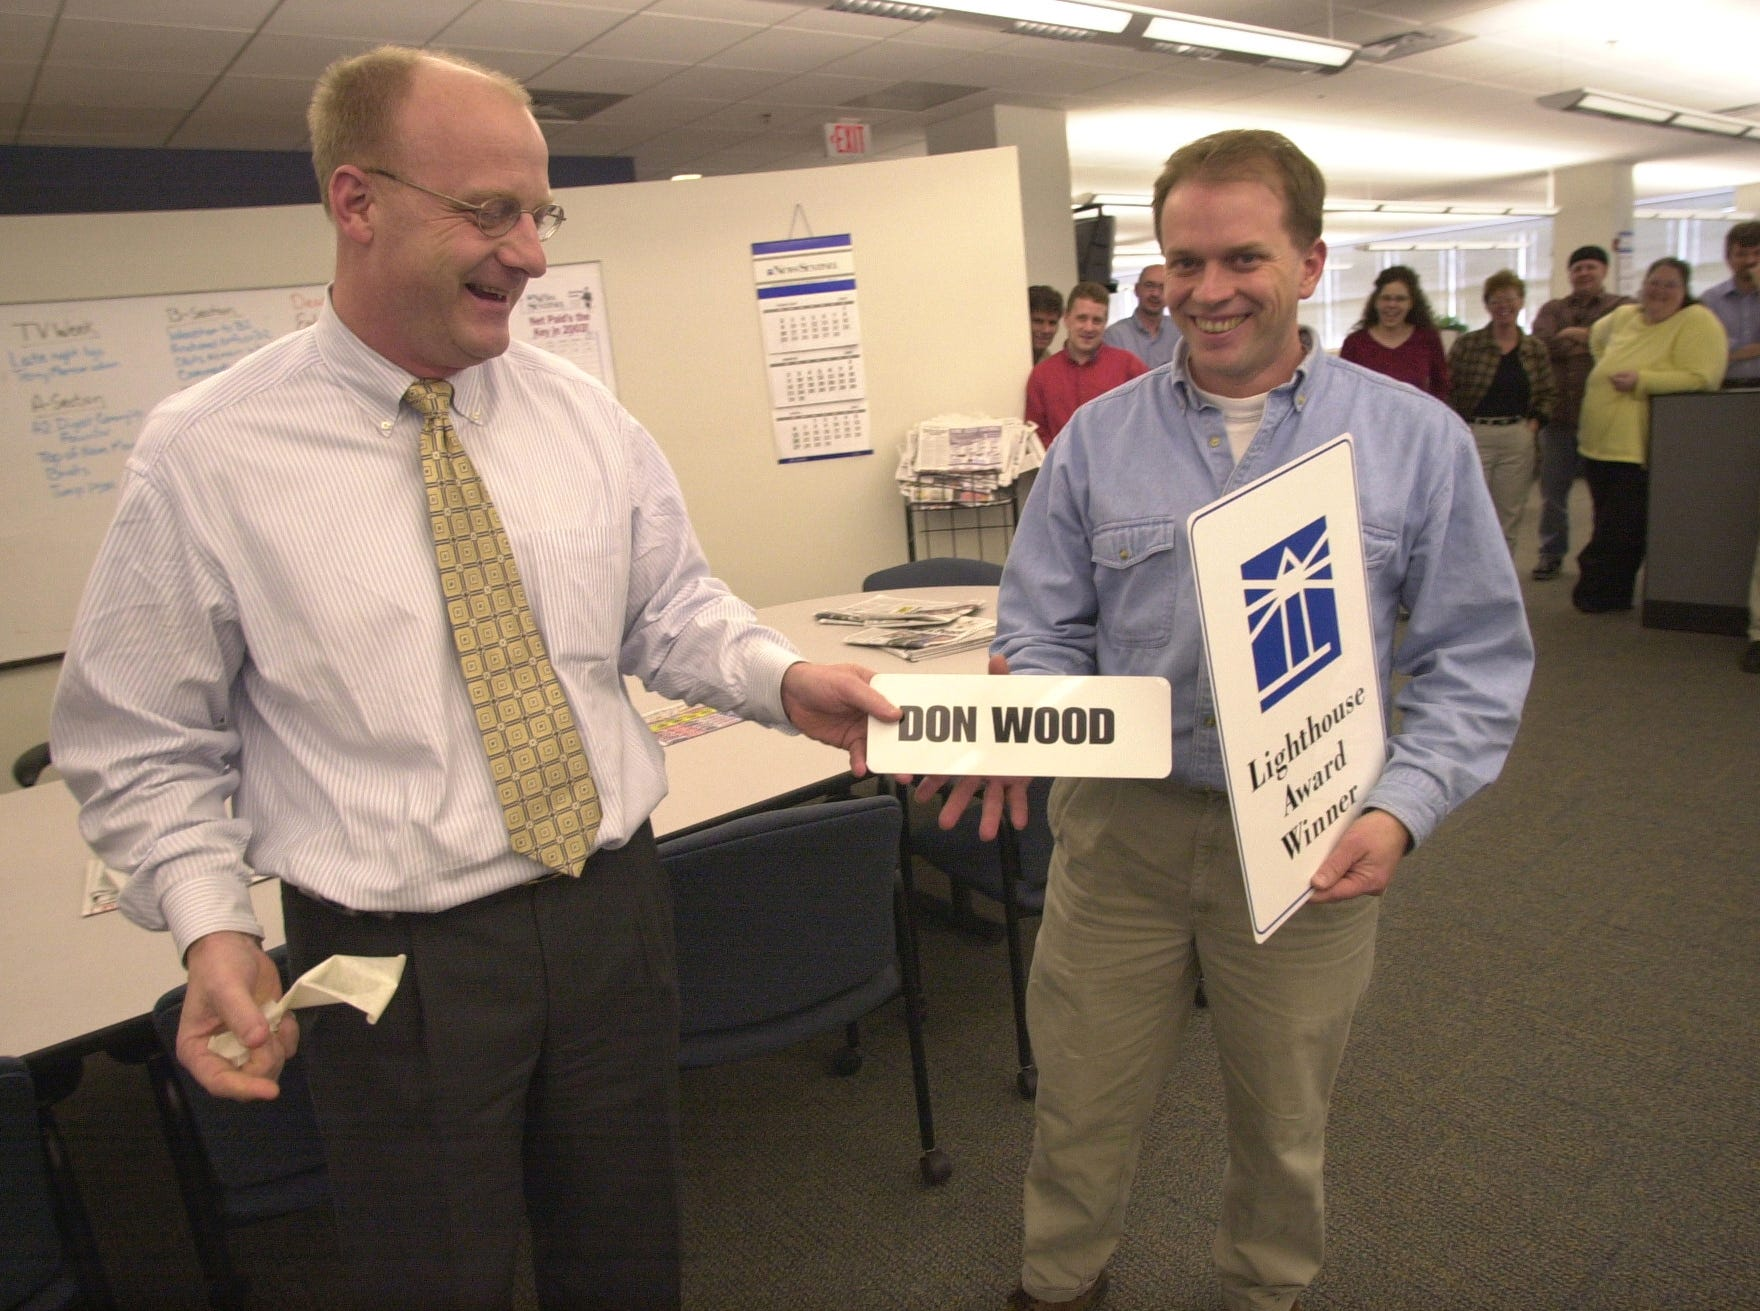 Publisher Bruce Hartmann, left, welcomes graphic artist Don Wood into the Scripps Howard Hall of Fame during a ceremony in 2003 at the News Sentinel in Knoxville. In addition, Wood received the first News Sentinel Lighthouse Award.